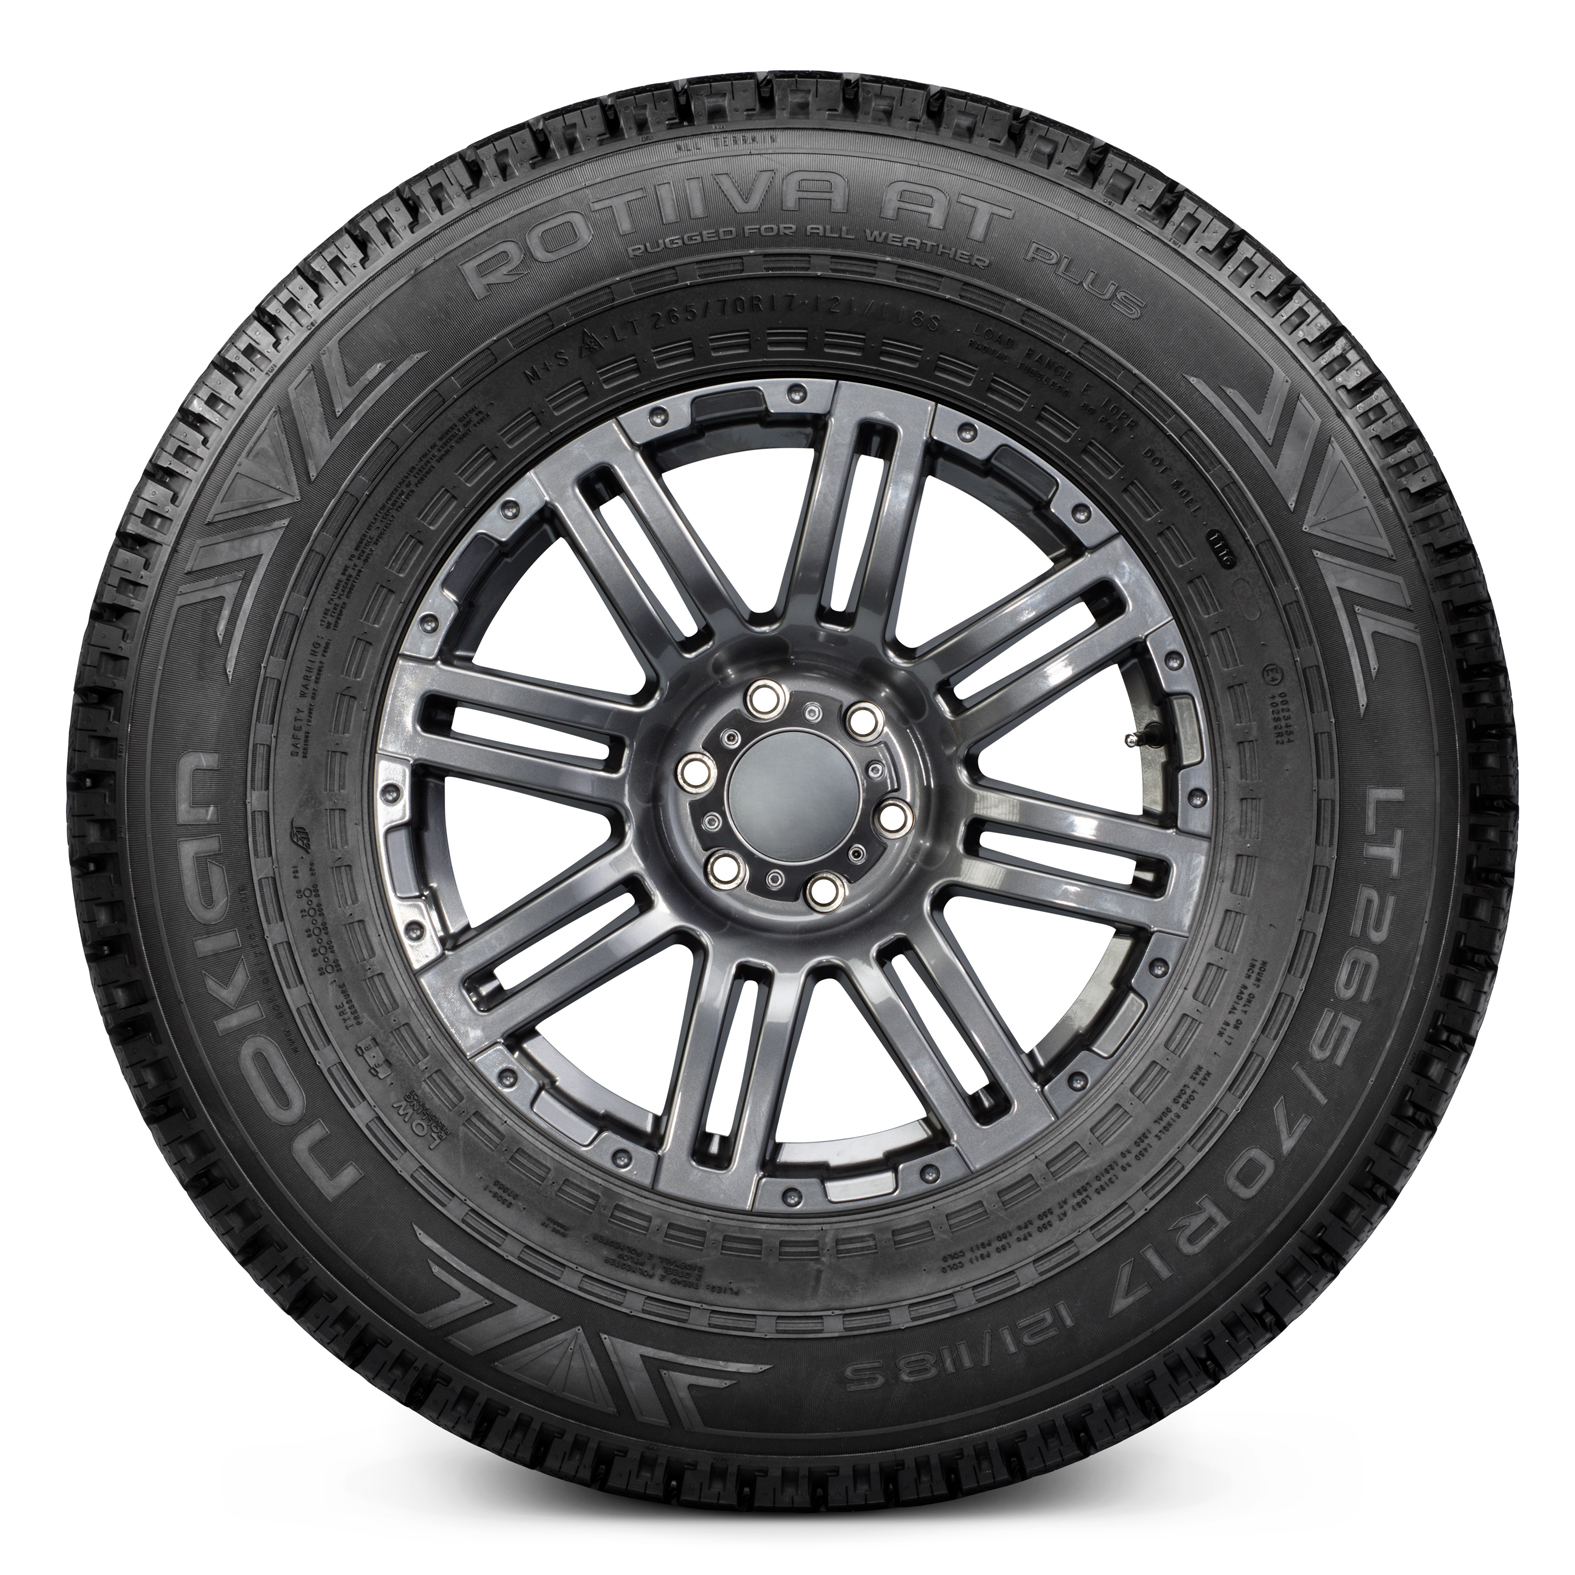 Nokian ROTIIVA AT PLUS 275/65 R20 TL S Off Road ohne Winter !!